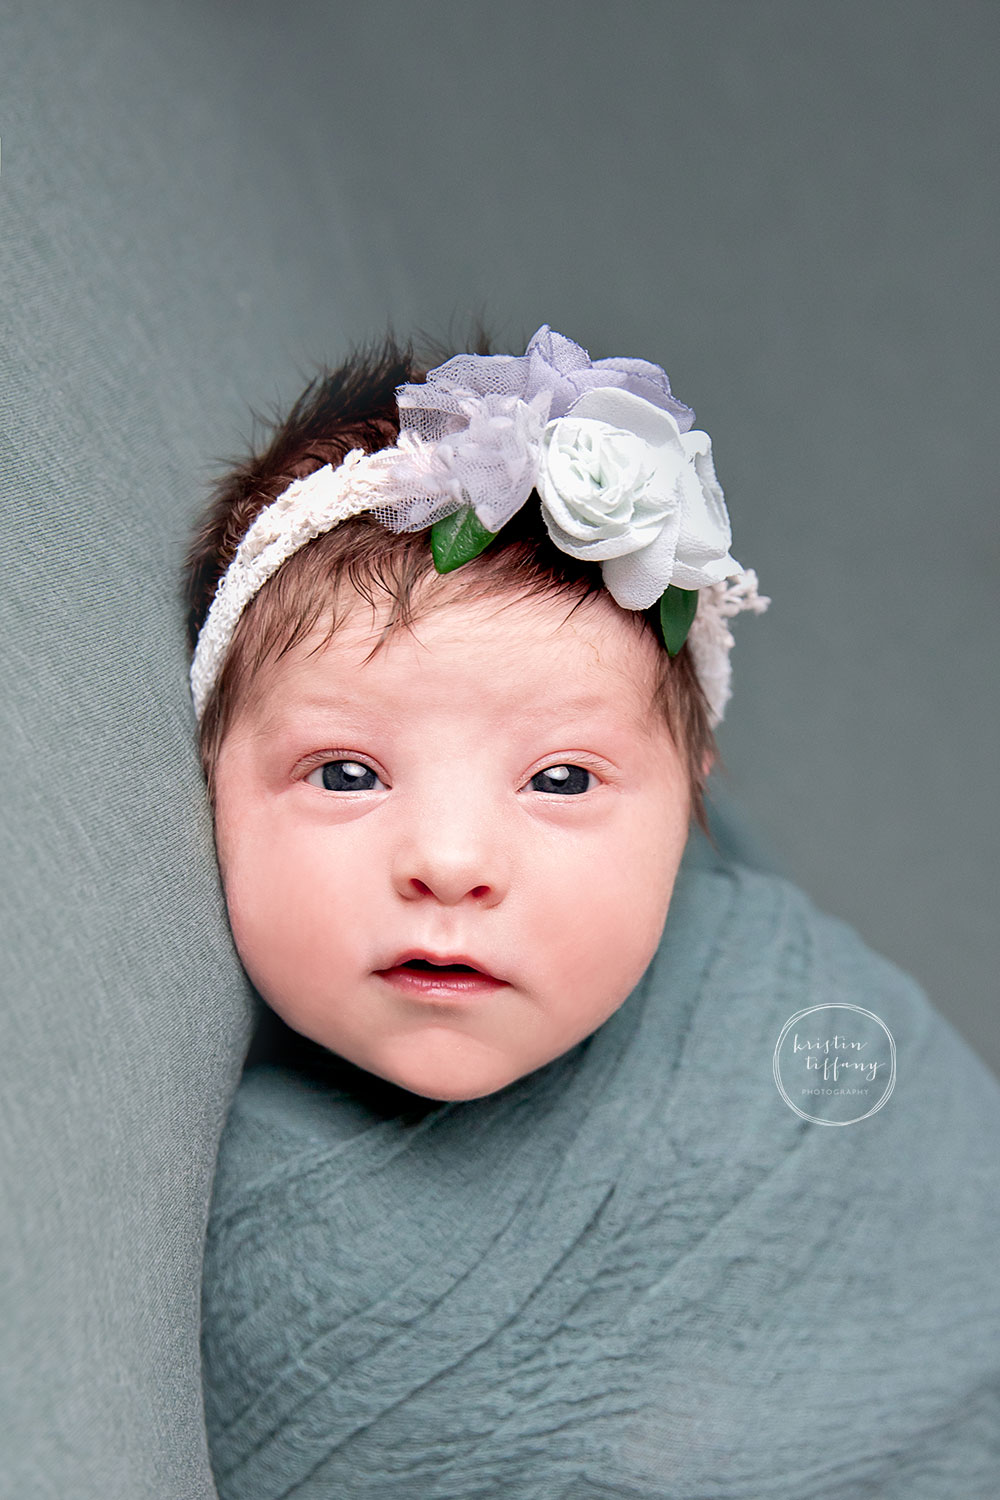 a photo of a newborn baby girl at her newborn photo session